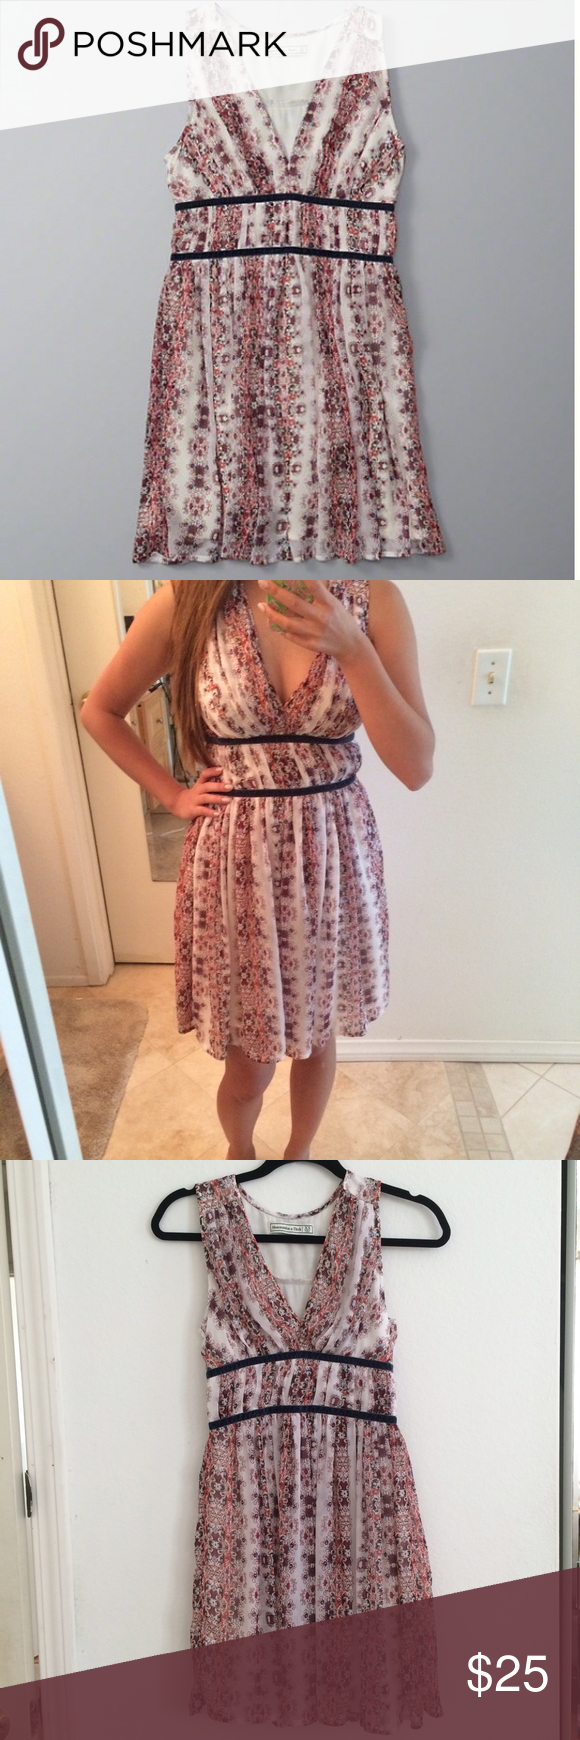 Abercrombie & Fitch Printed Dress Worn once. Side zip, eye hook closure. Abercrombie & Fitch Dresses